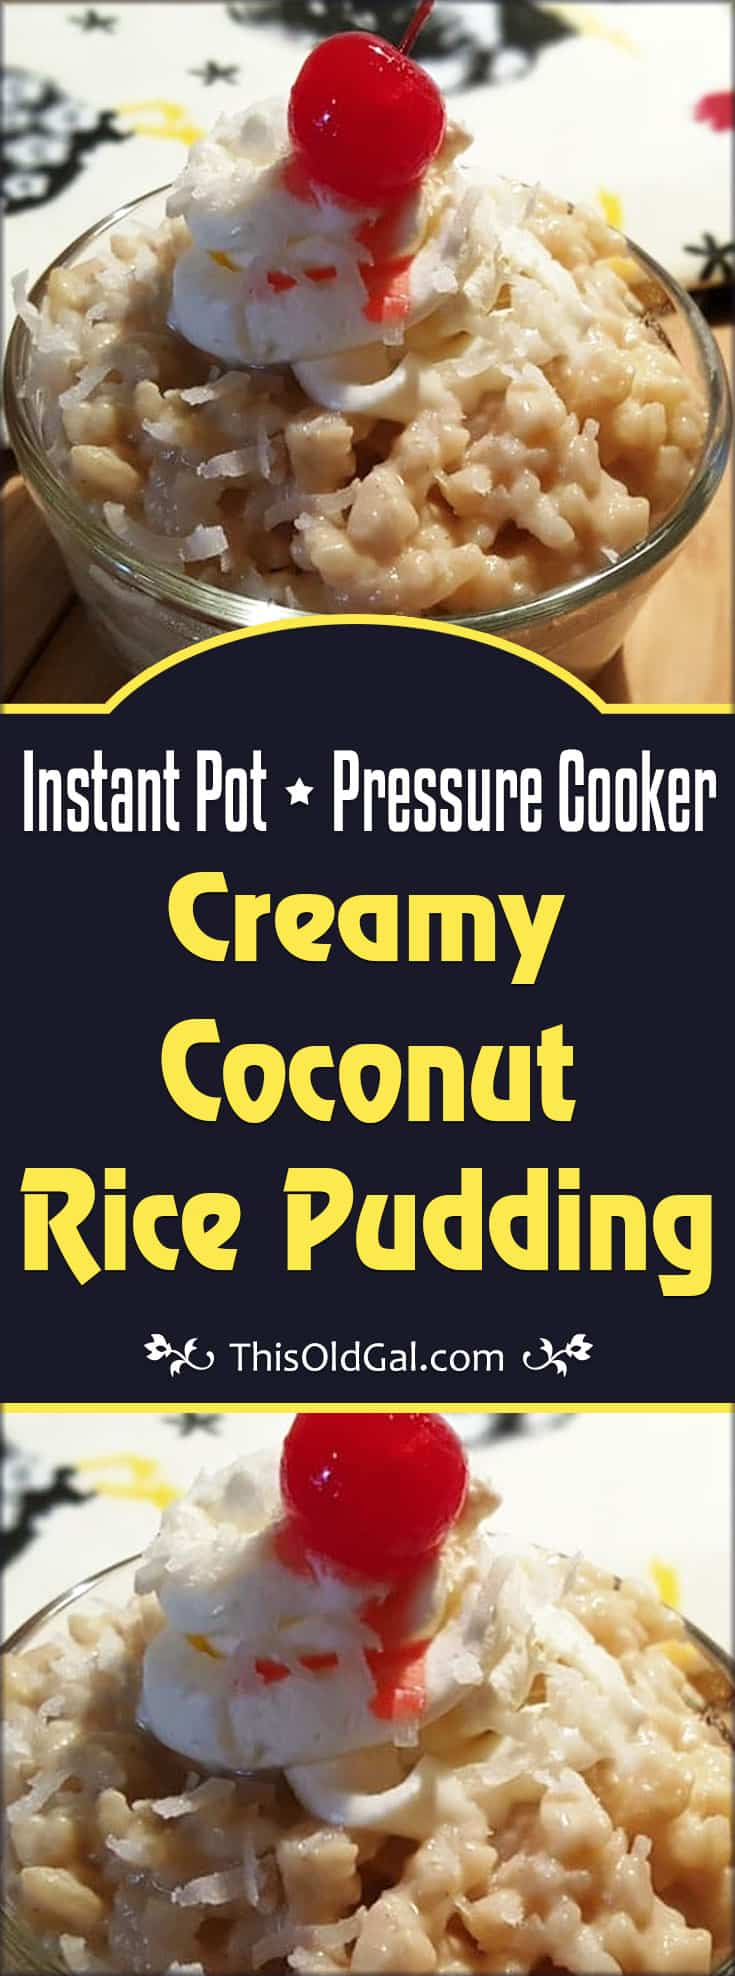 Pressure Cooker Creamy Coconut Rice Pudding